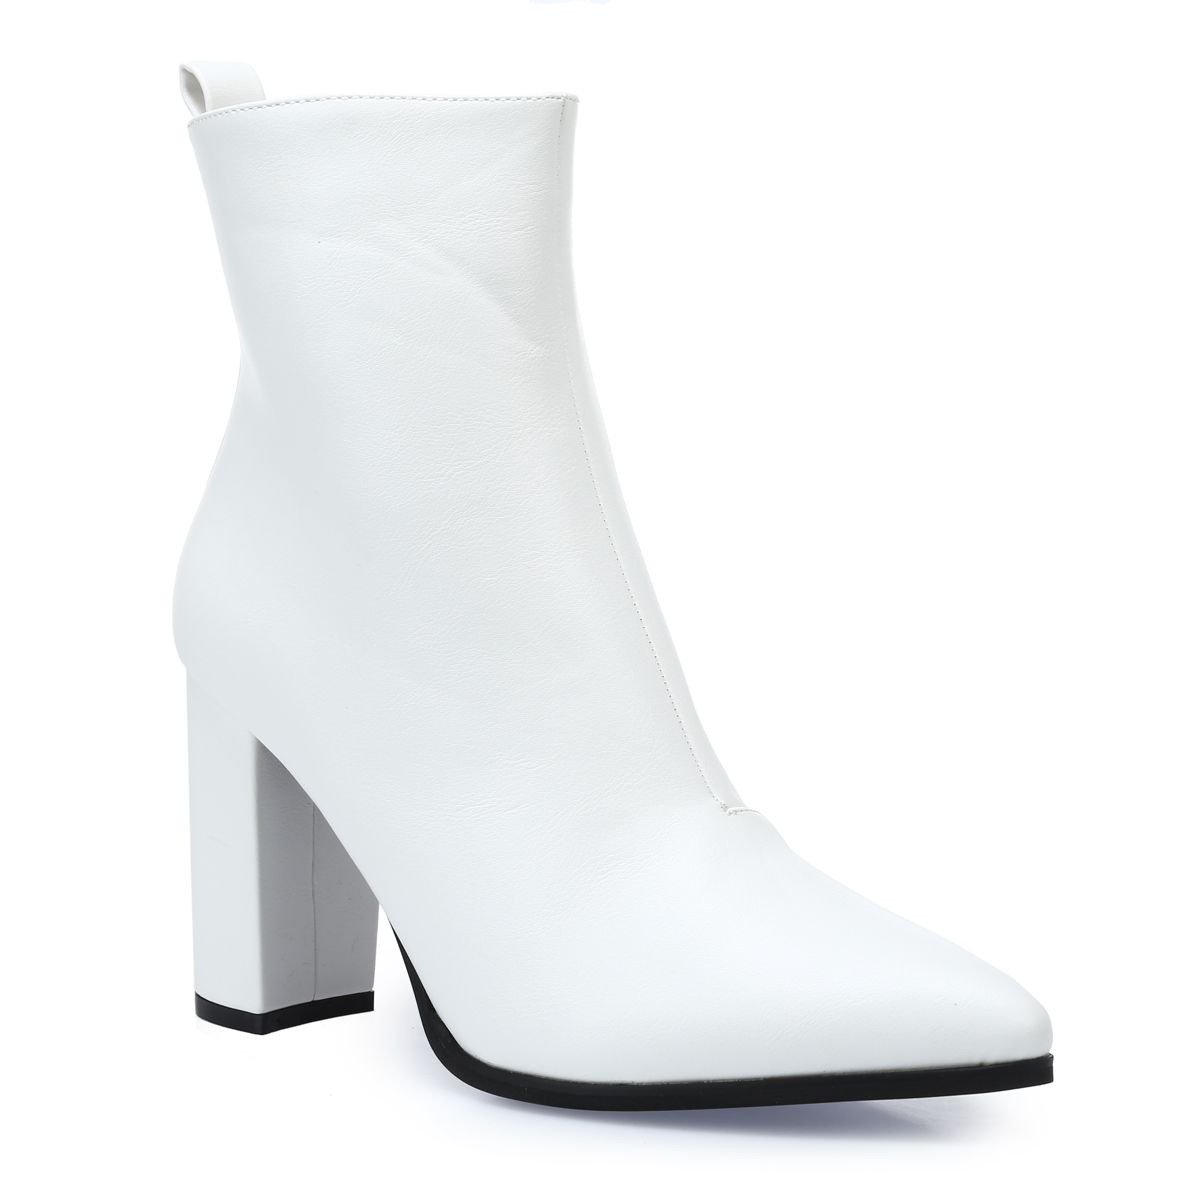 Bottines blanches en similicuir